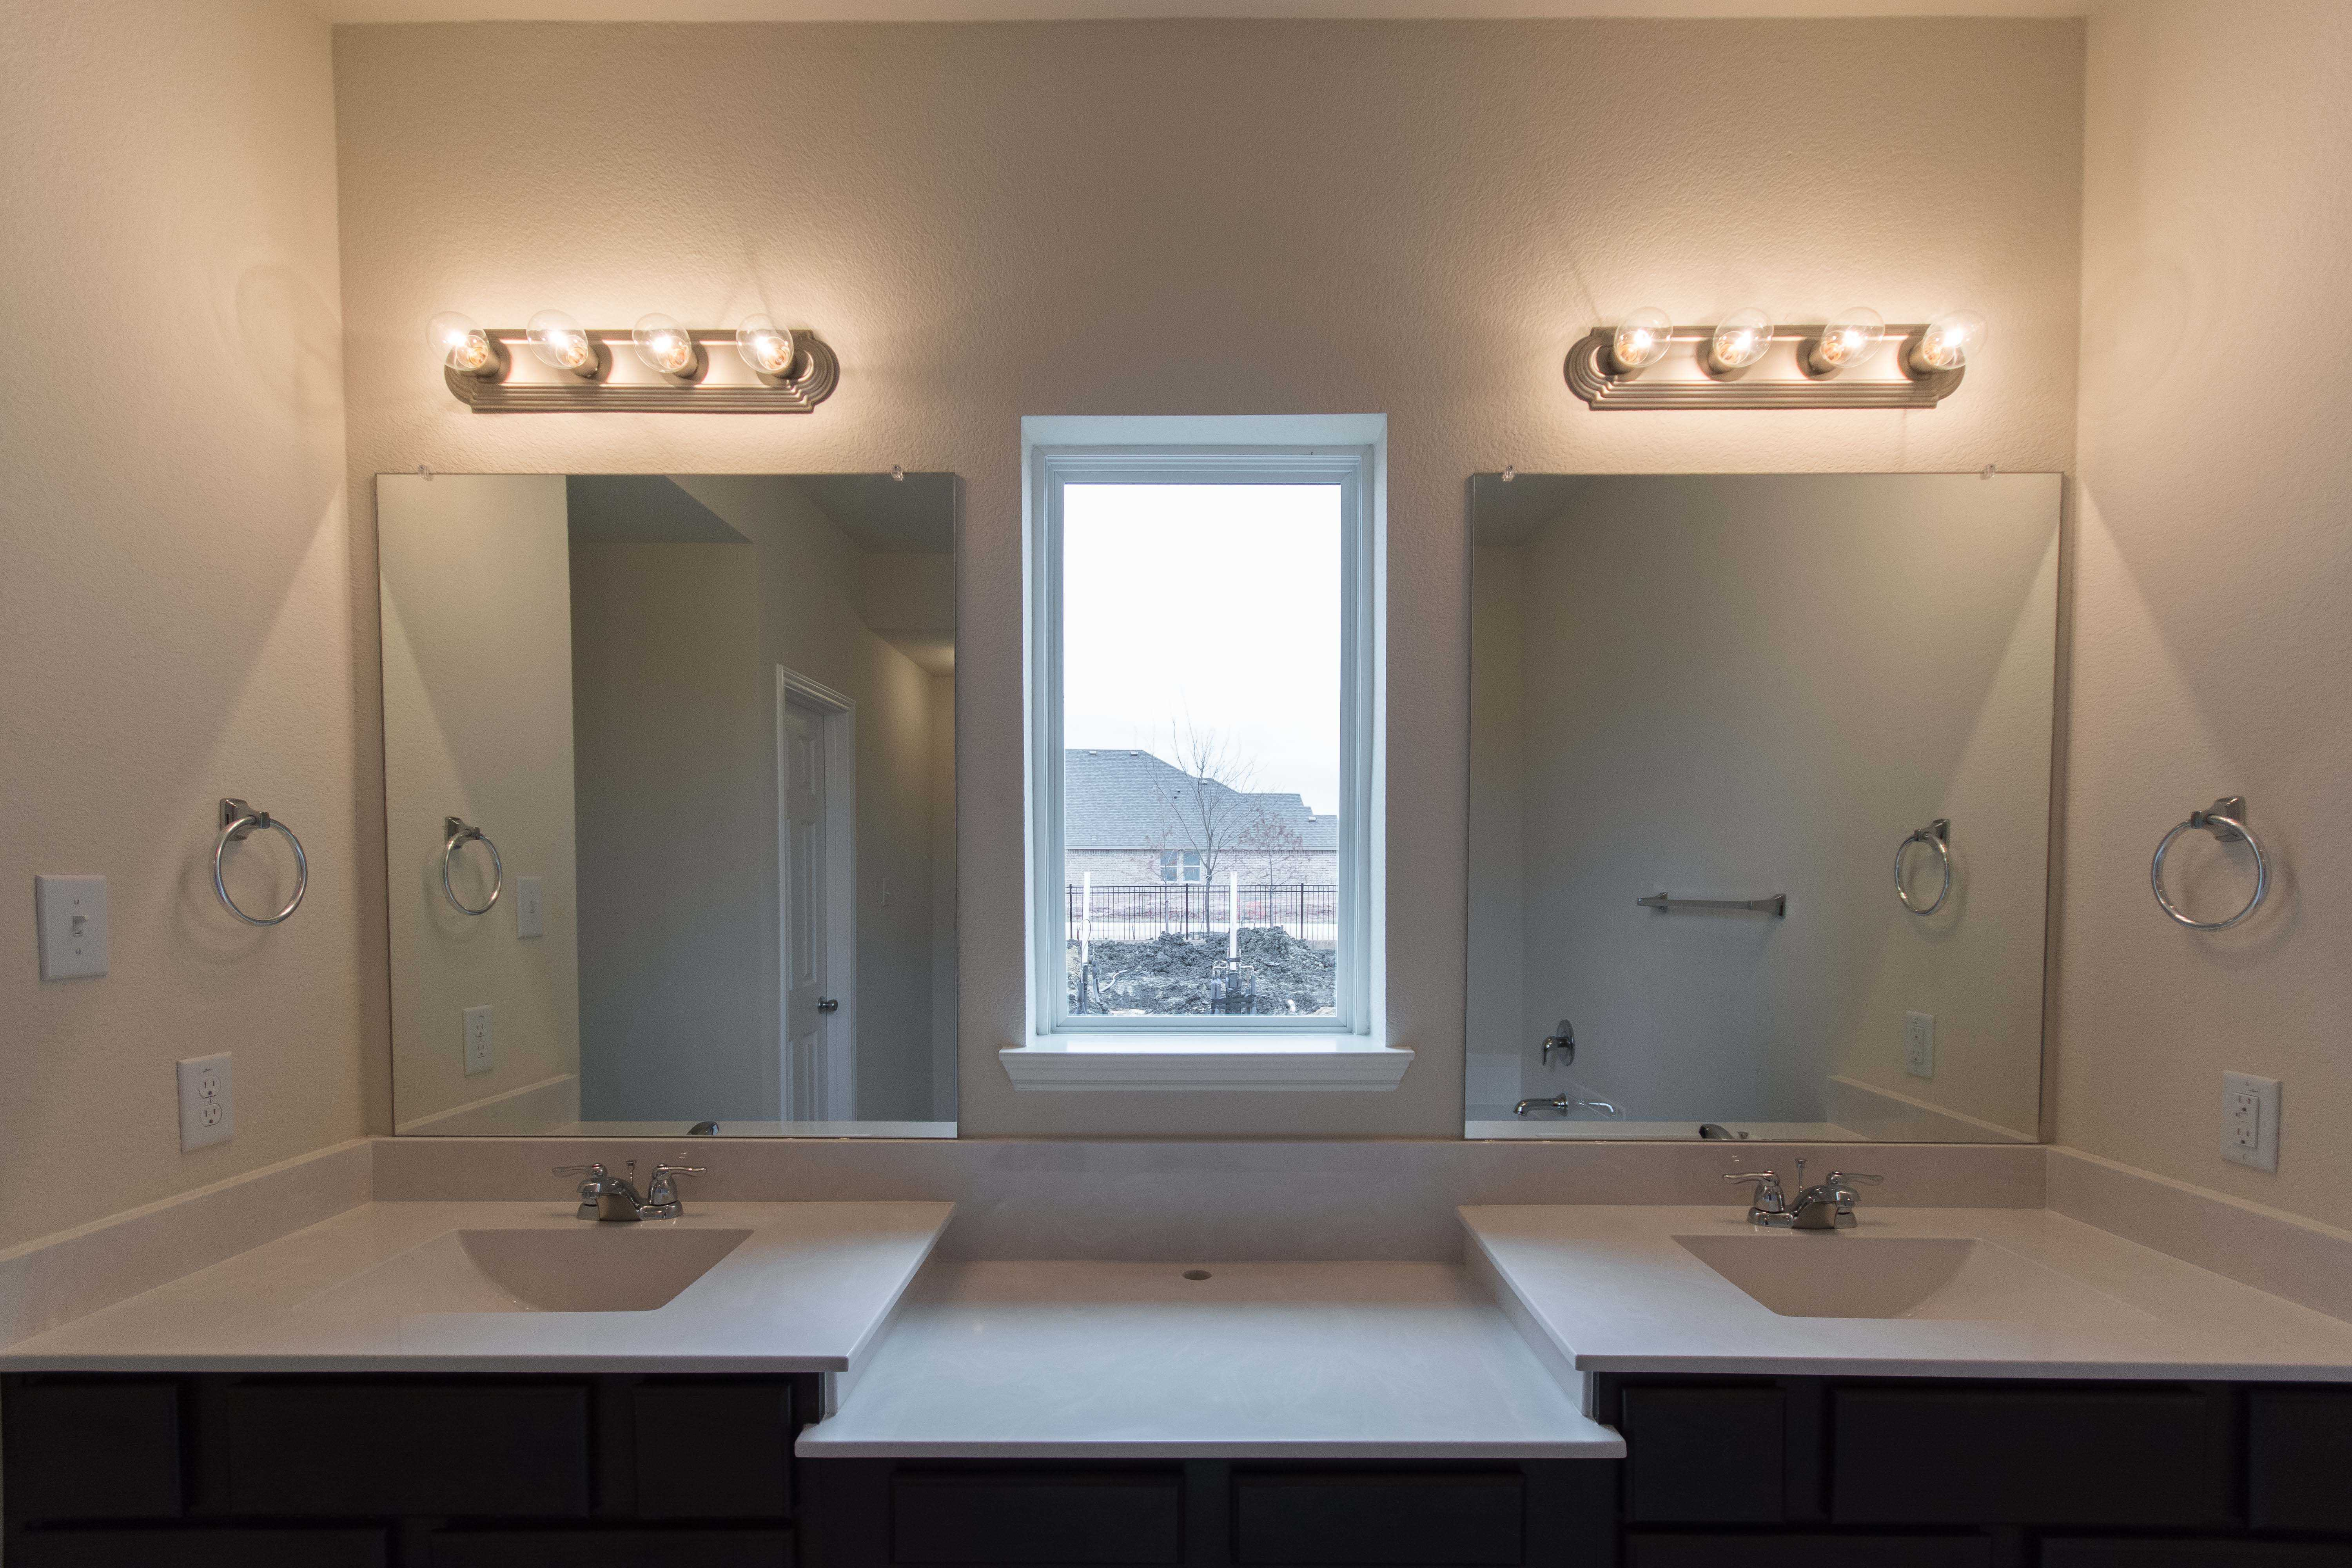 Bathroom featured in the Plan Eastbourne By Highland Homes in Dallas, TX